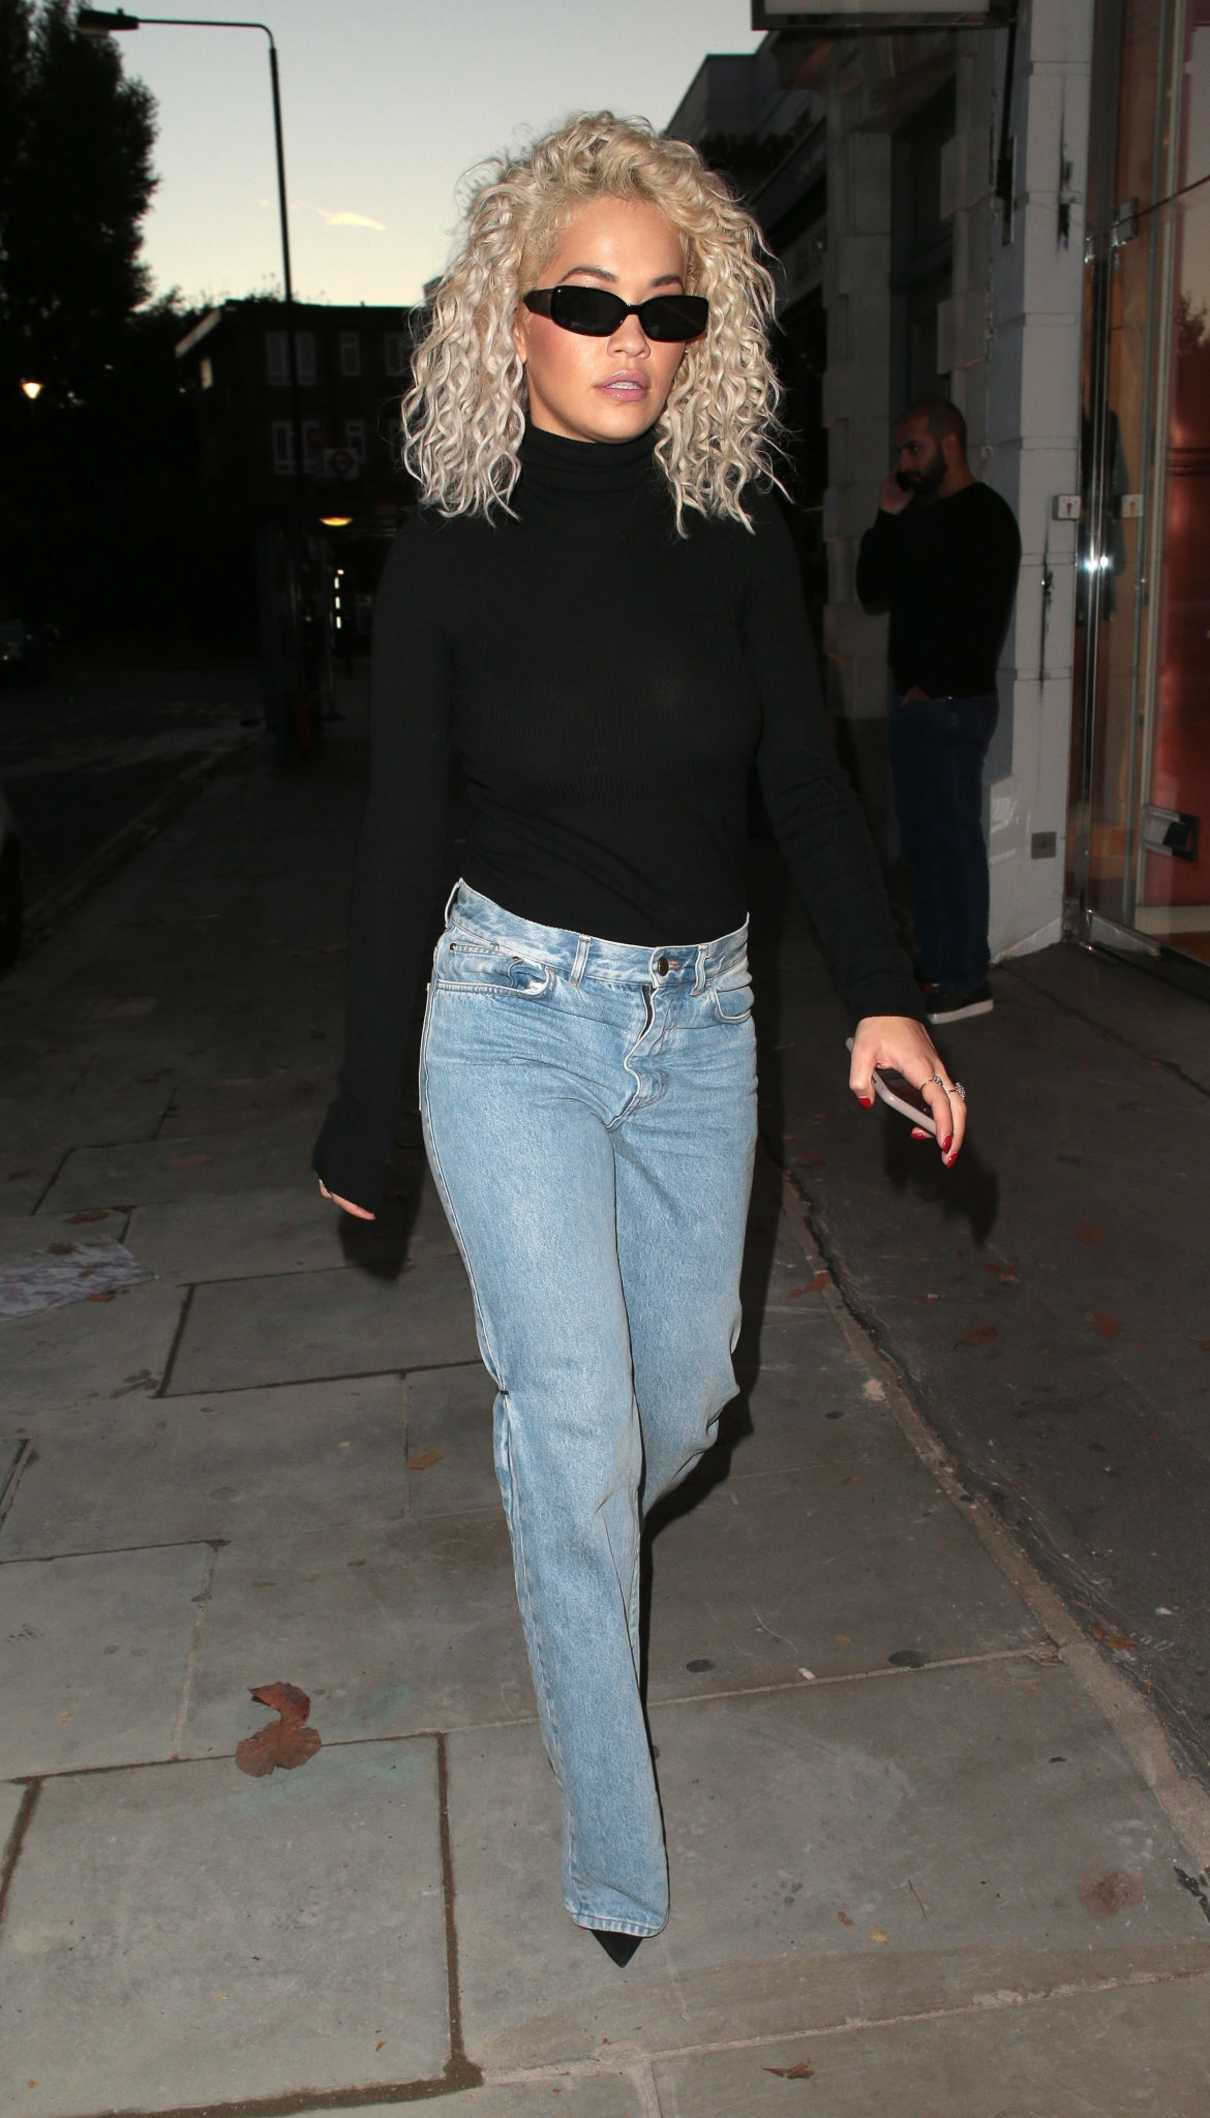 Rita Ora in a Black Turtleneck